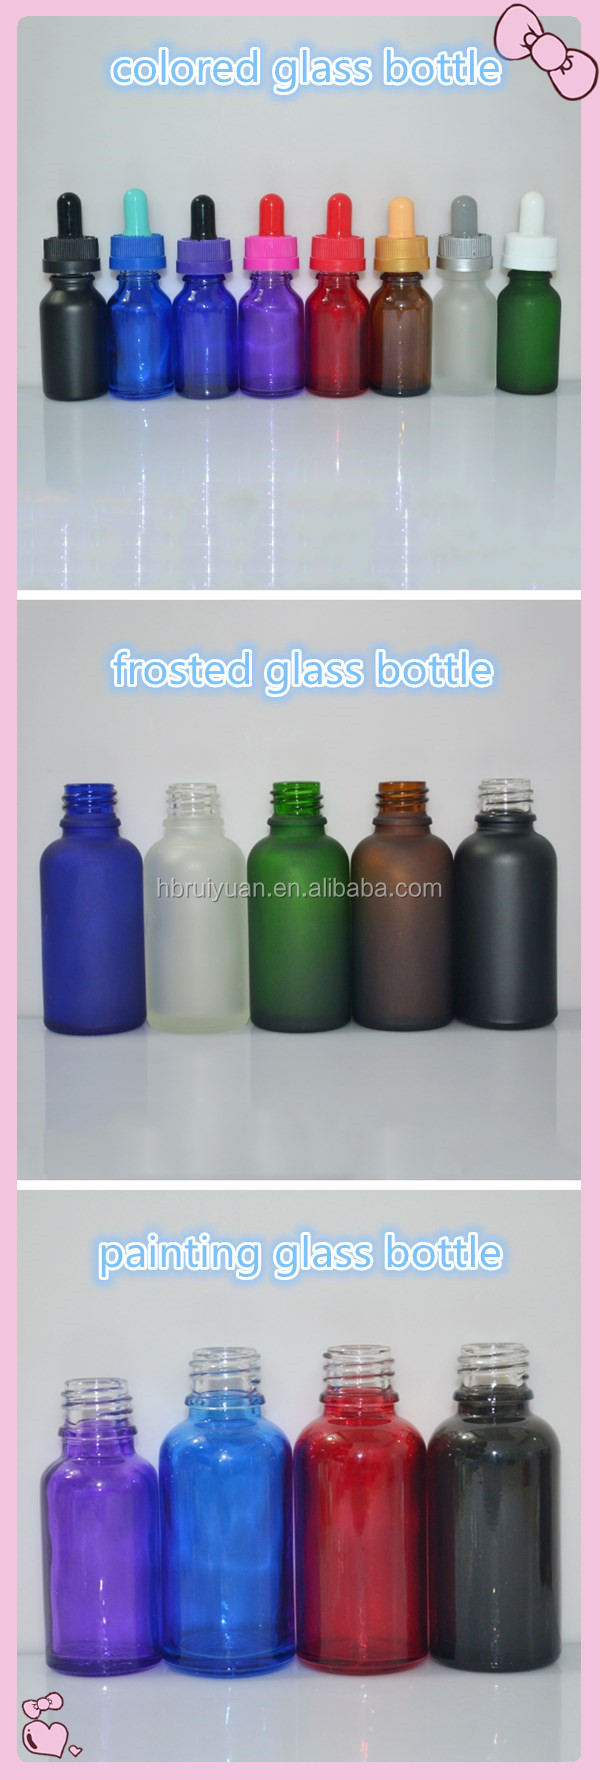 childproof frosted black glass dropper bottles wholesale green amber 10ml 15ml 50ml 30ml e liquid glass dropper bottle